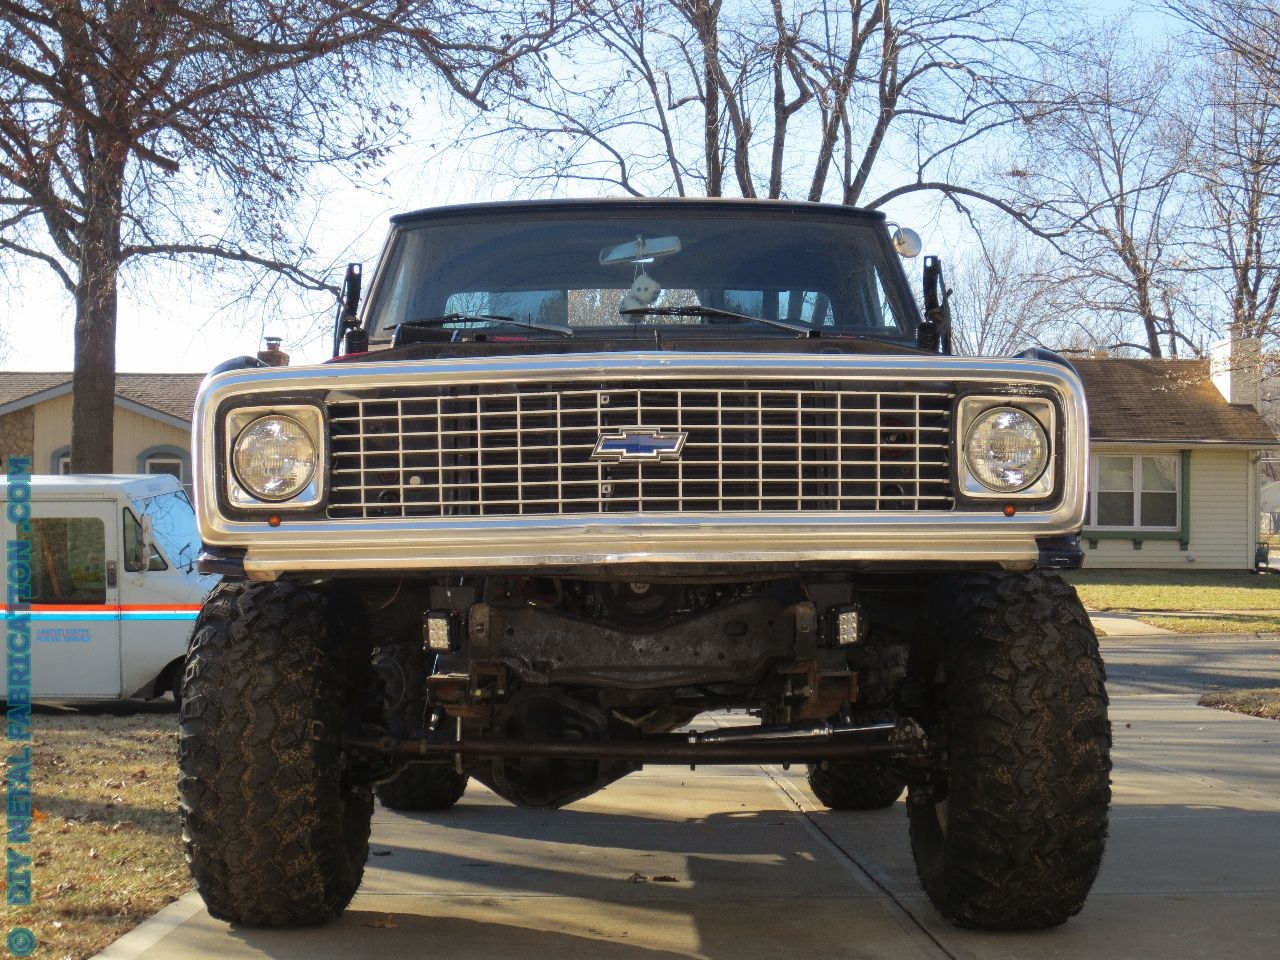 53 Ls Engine Swap Into Ol Blue 1971 Chevy Truck Part 8 Finally I 1986 K30 Military Wiring Diagram Get To Drive It